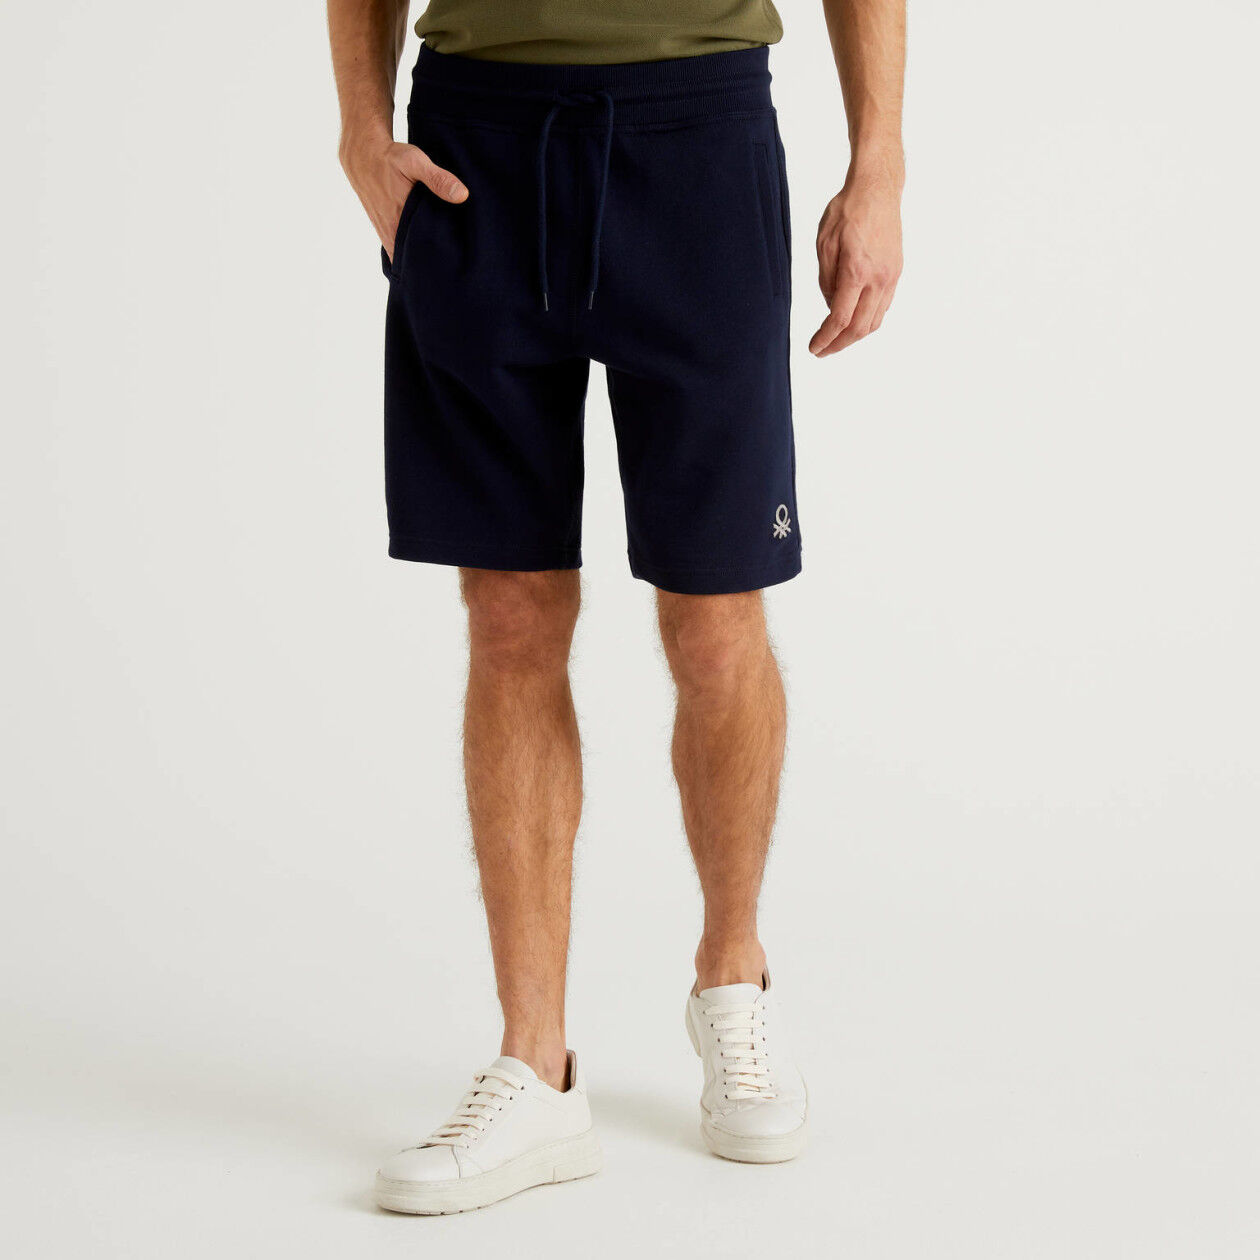 Bermudas in 100% cotton sweat